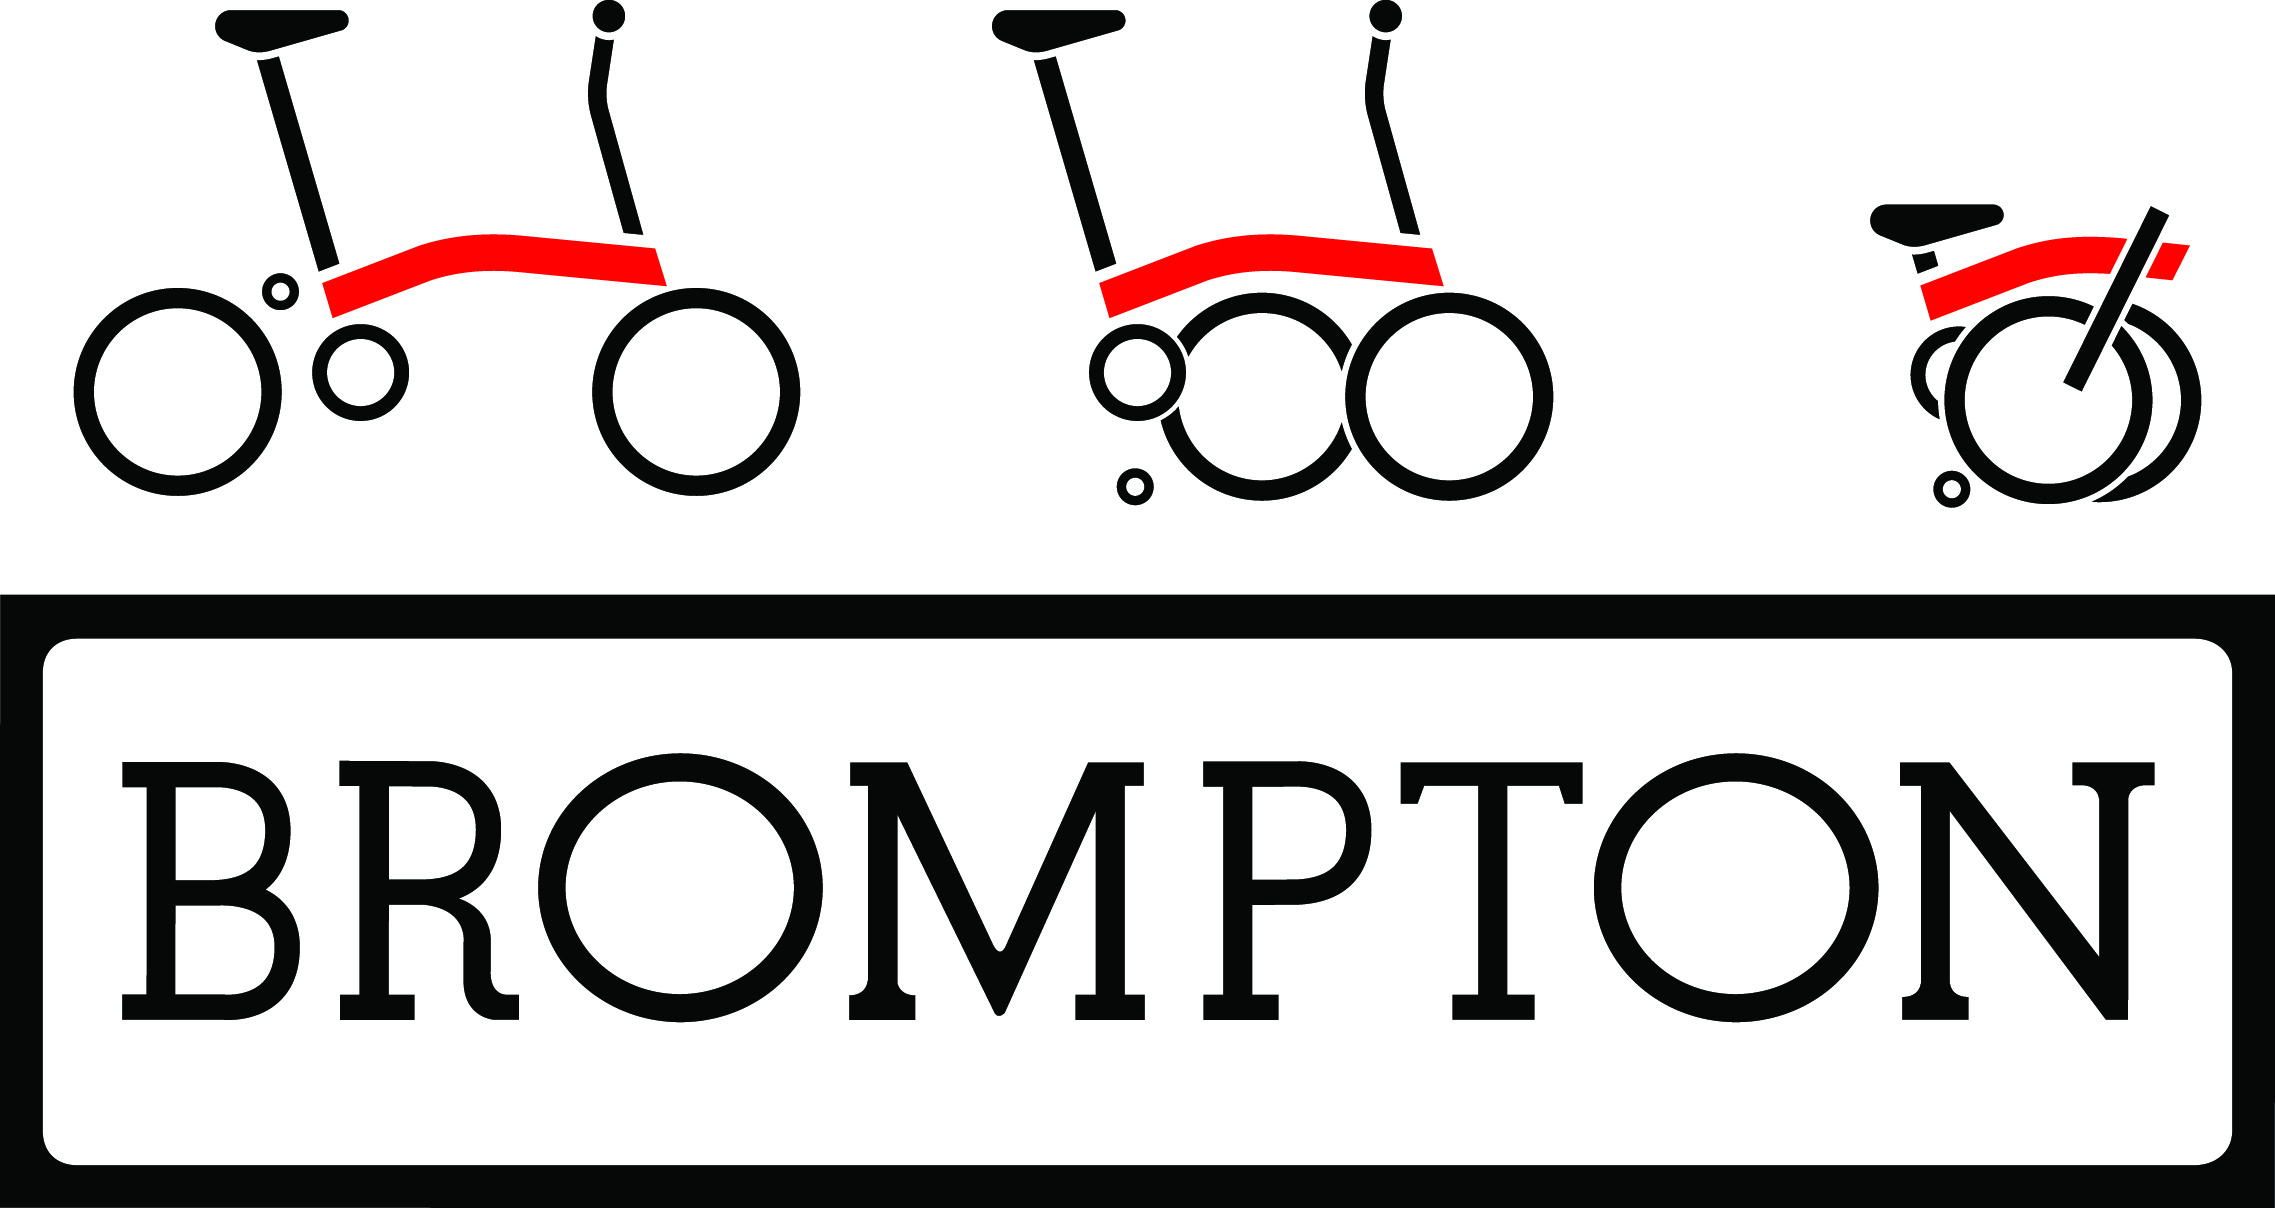 brompton bicycles Find a brompton bike on gumtree, the #1 site for bikes, & bicycles for sale classifieds ads in the uk.